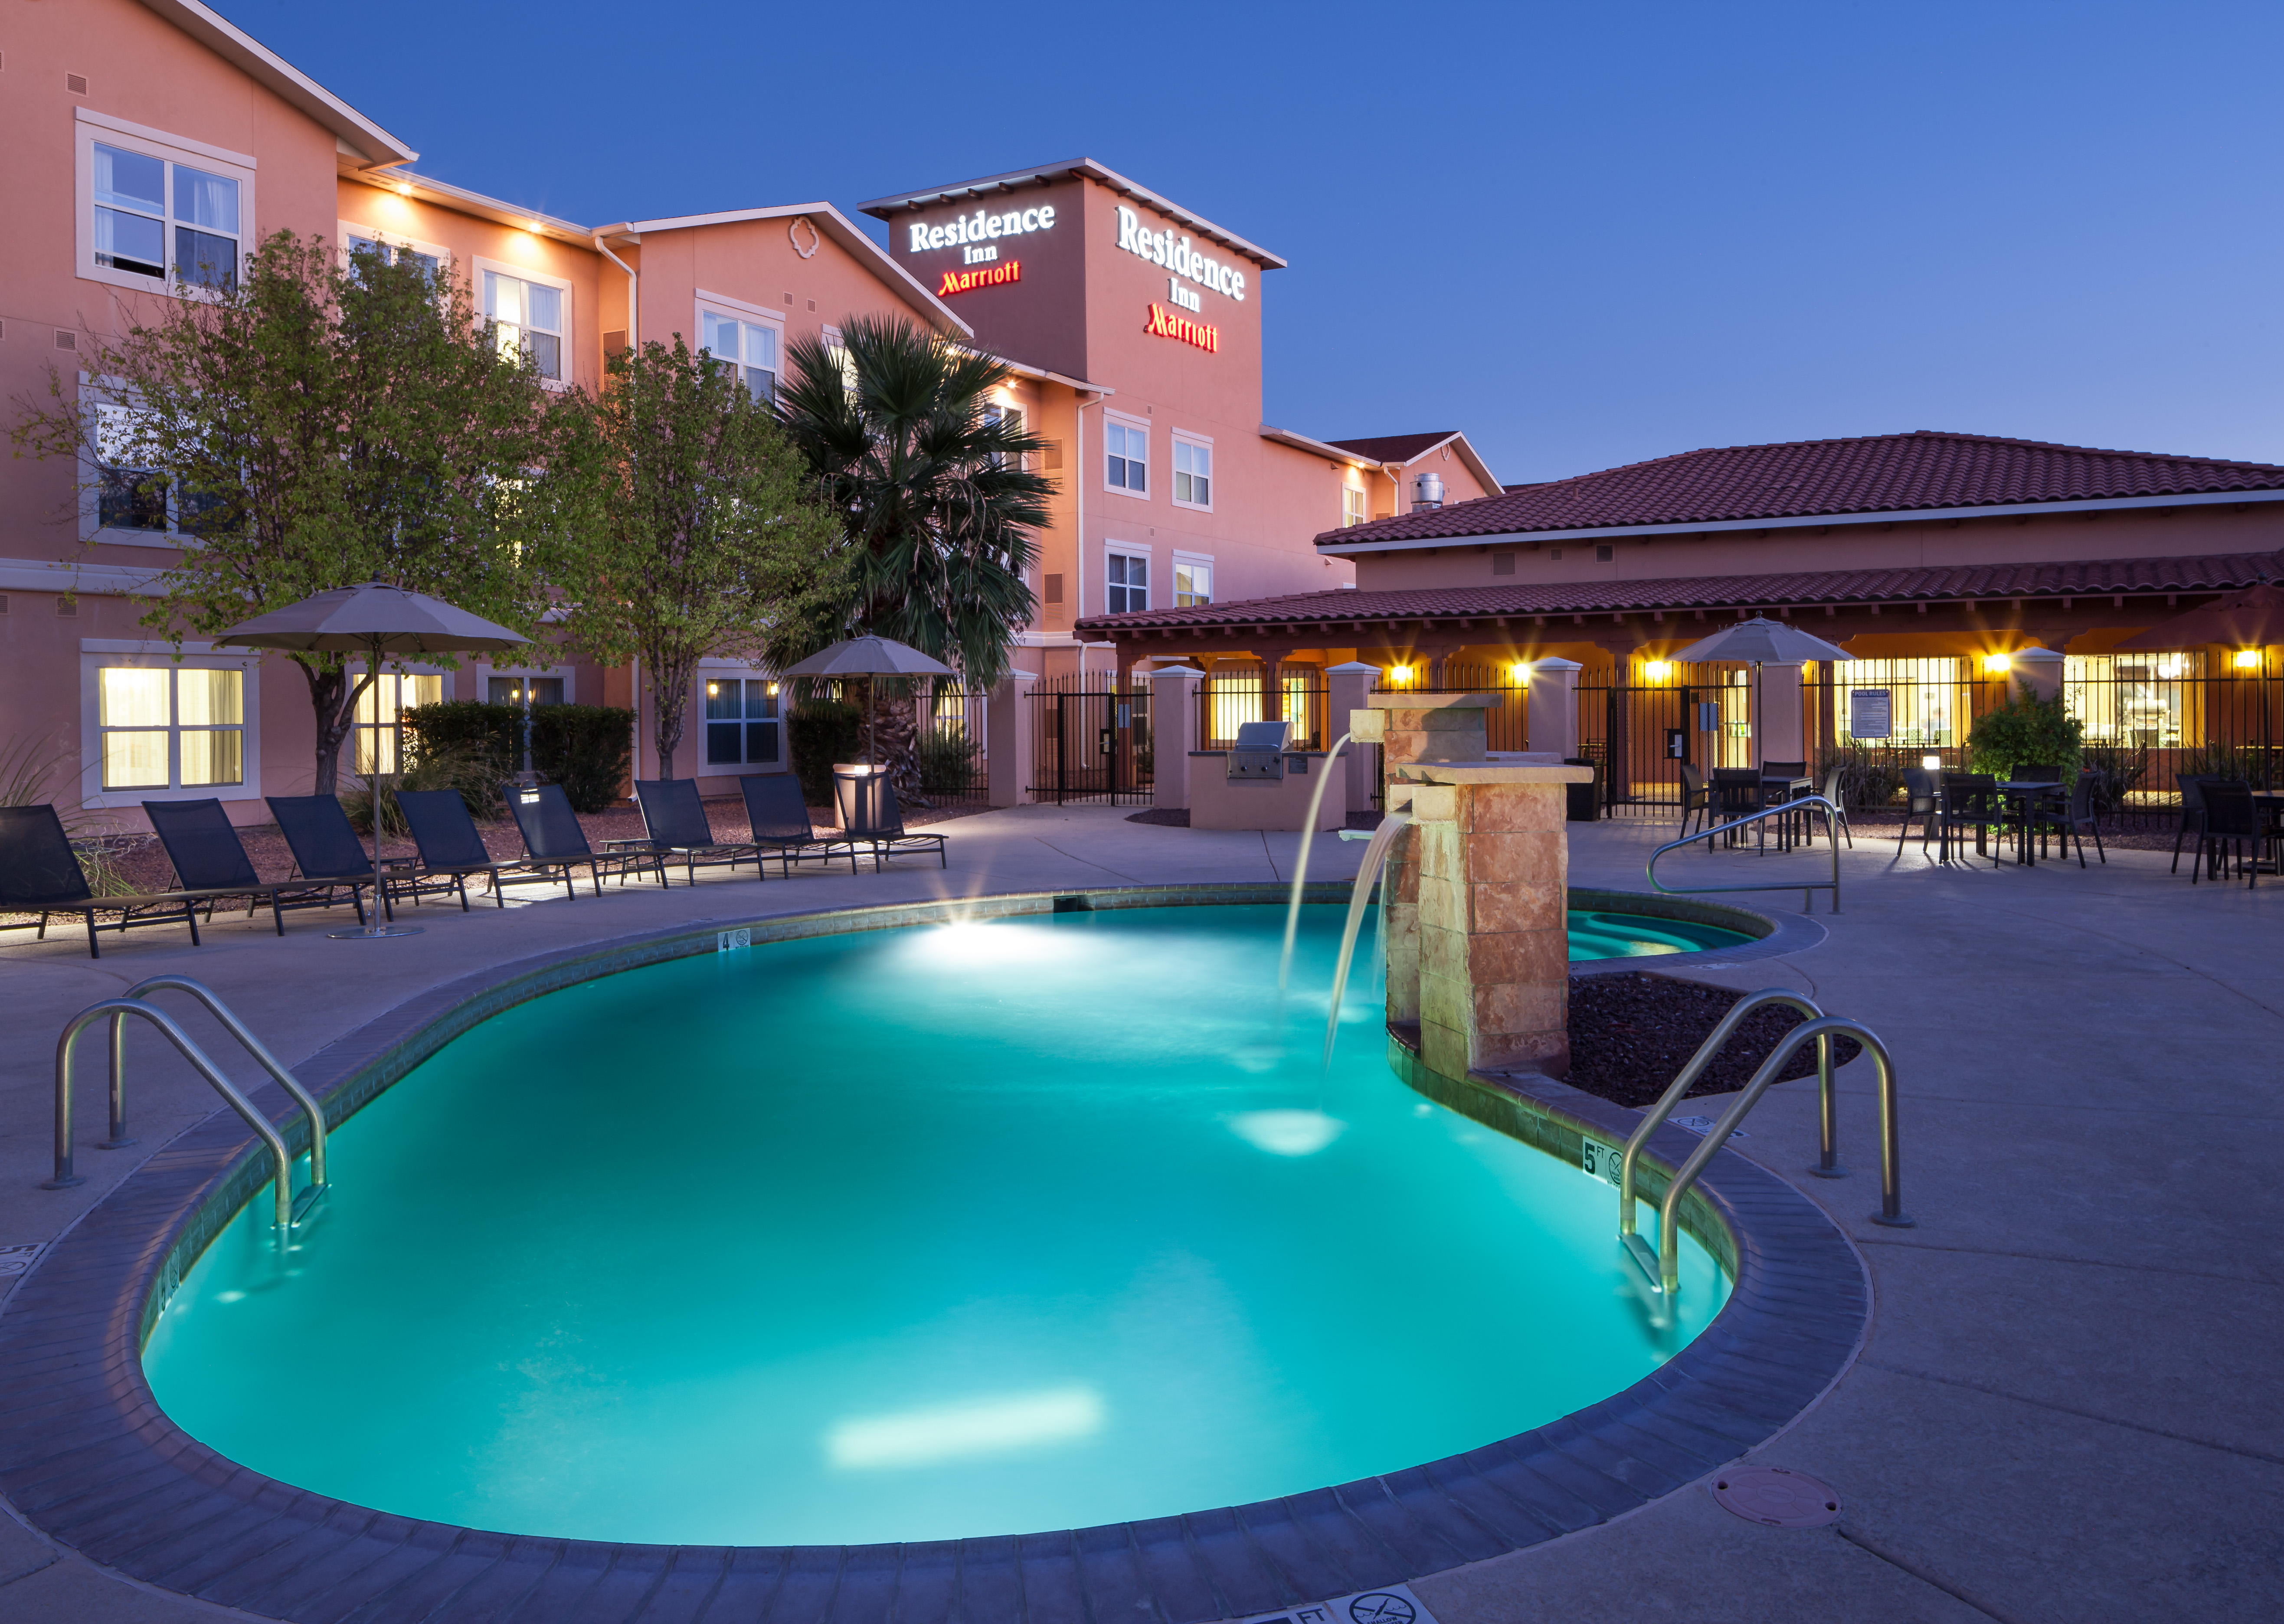 There 39 S A Modern Fresh New Look At The Residence Inn Tucson Airport With Amenities For